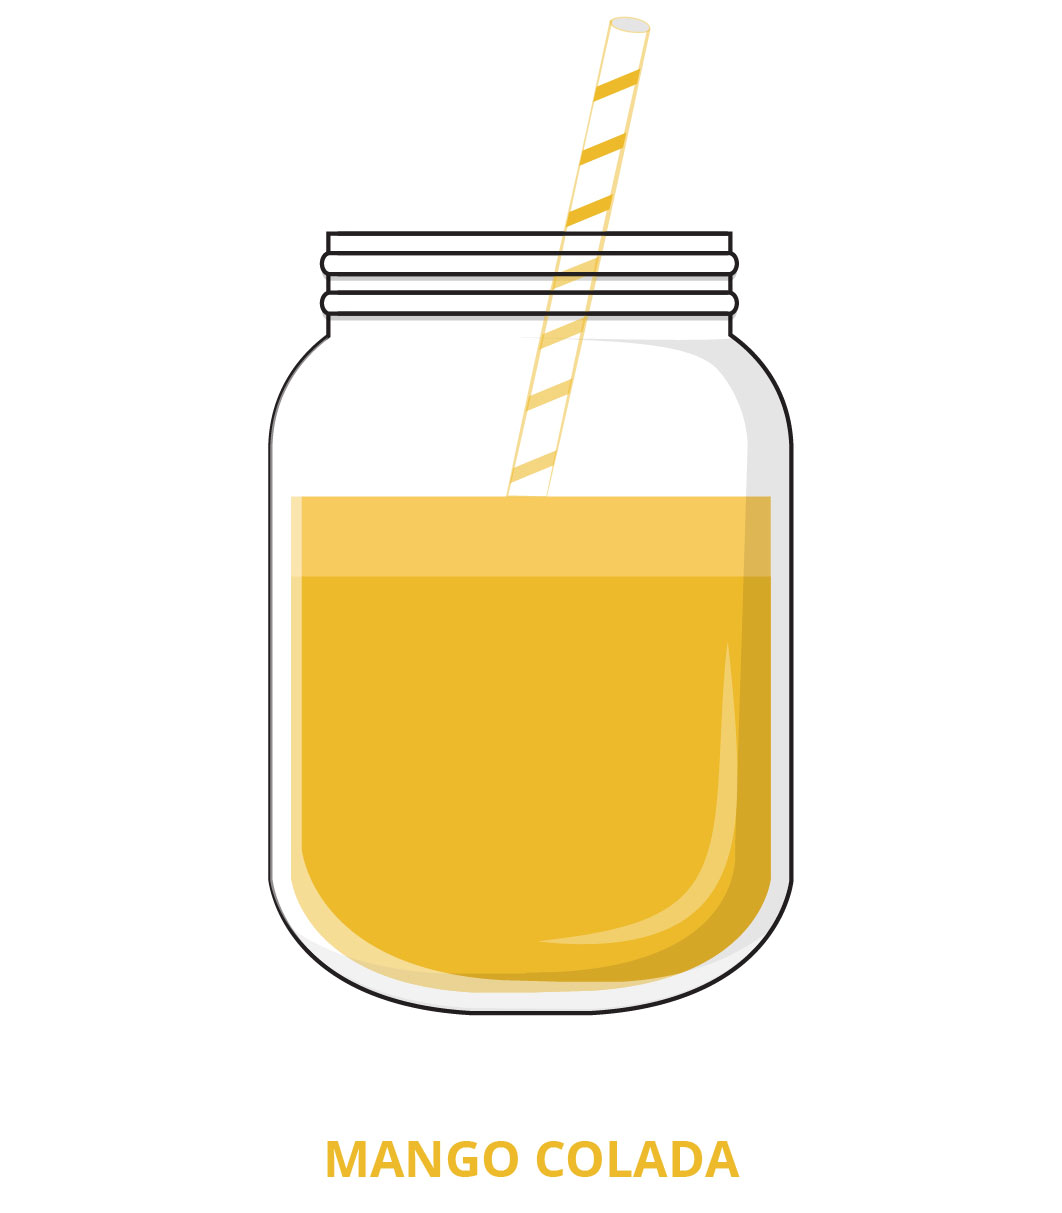 Yellow clipart smoothie. Juicydrop cold pressed menu